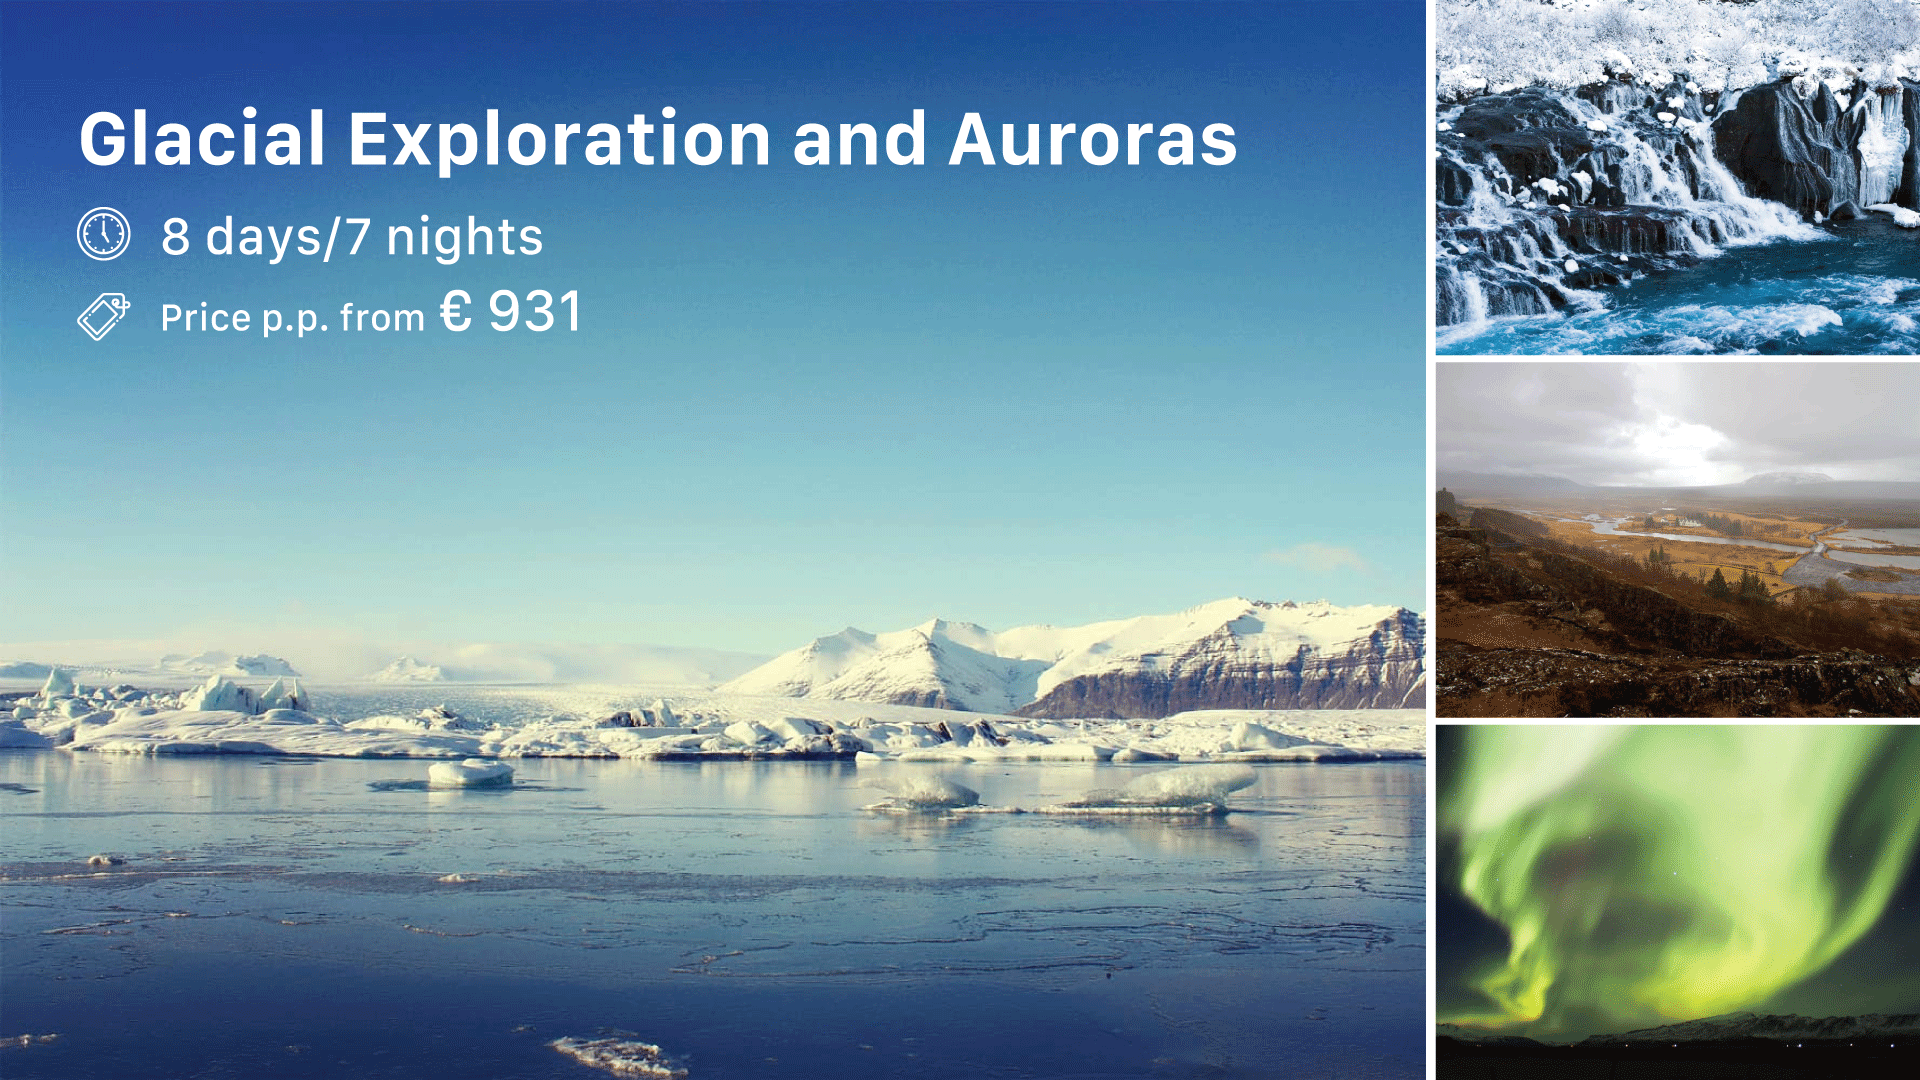 Glacial Exploration and Auroras